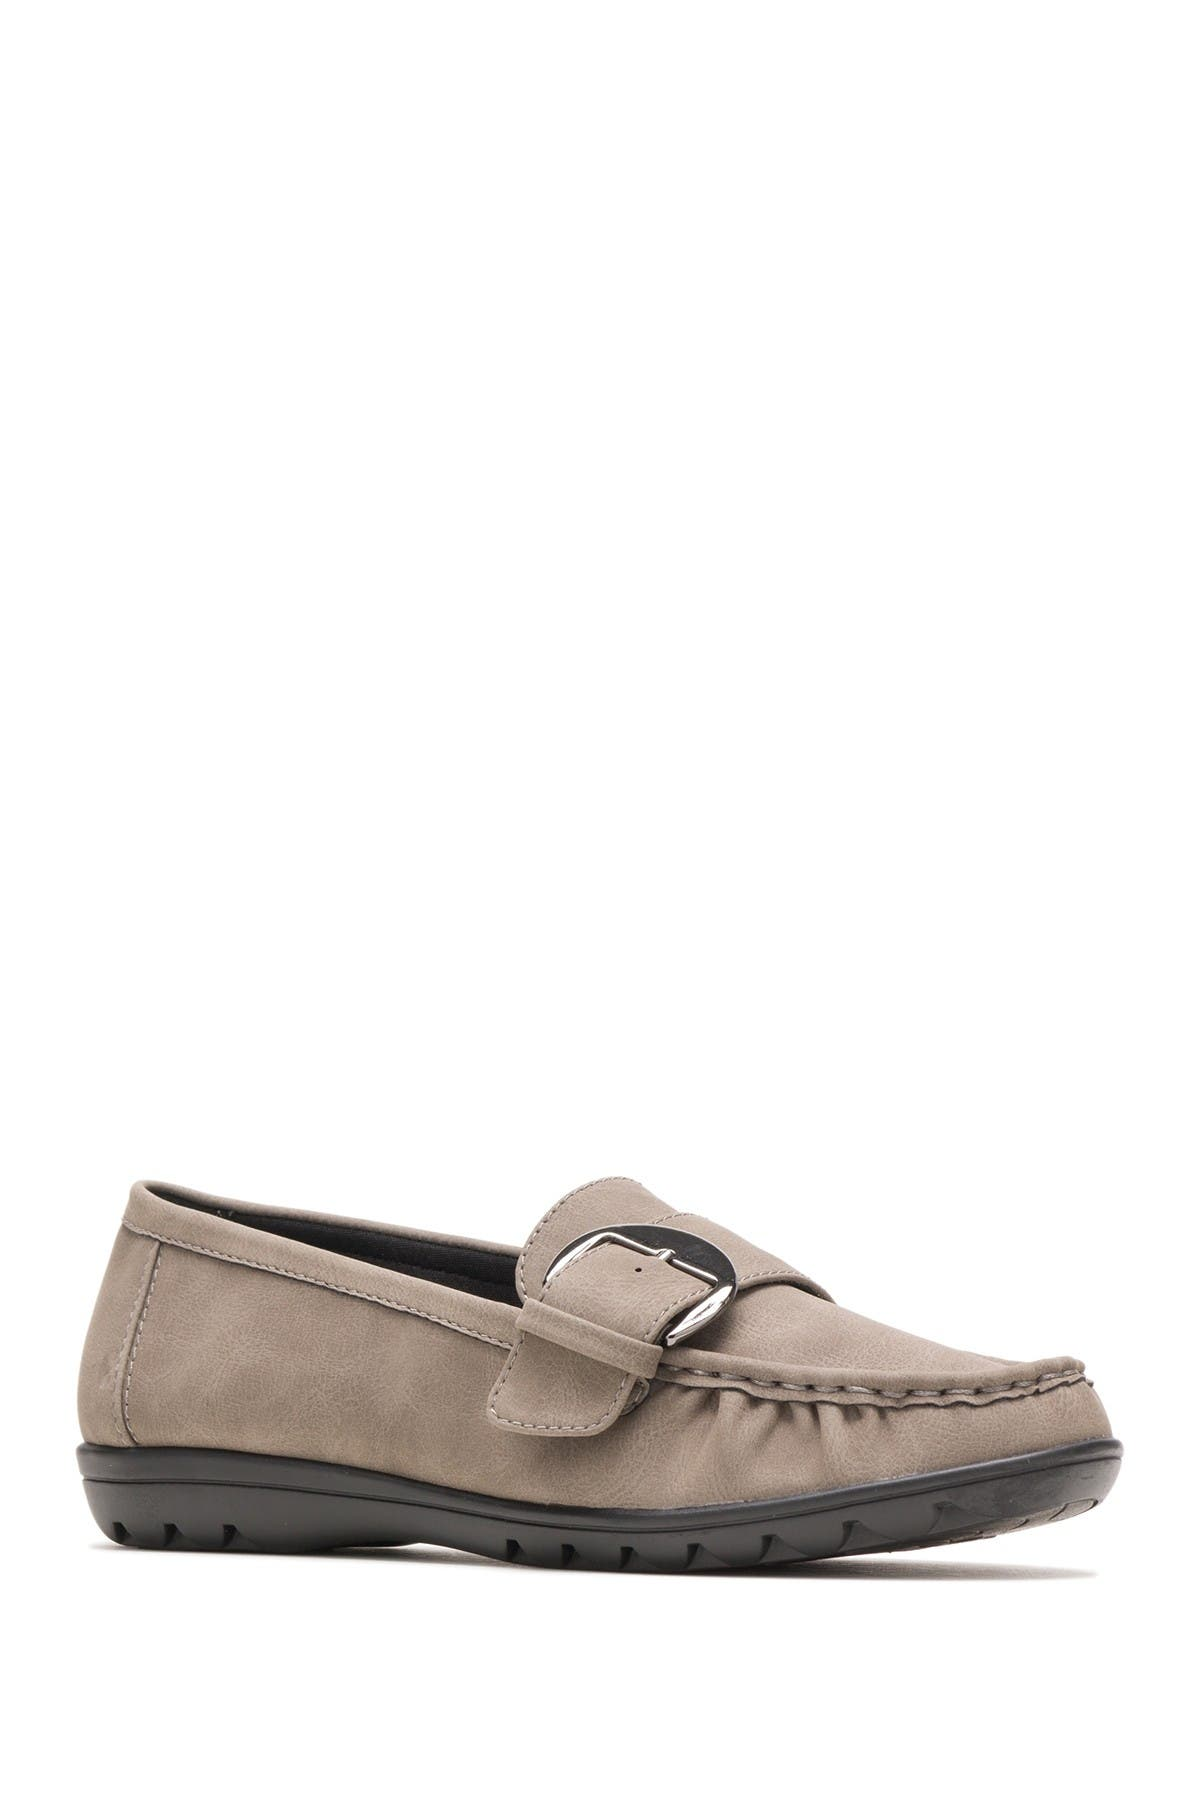 Image of Hush Puppies Vivid Buckle Loafer - Wide Width Available